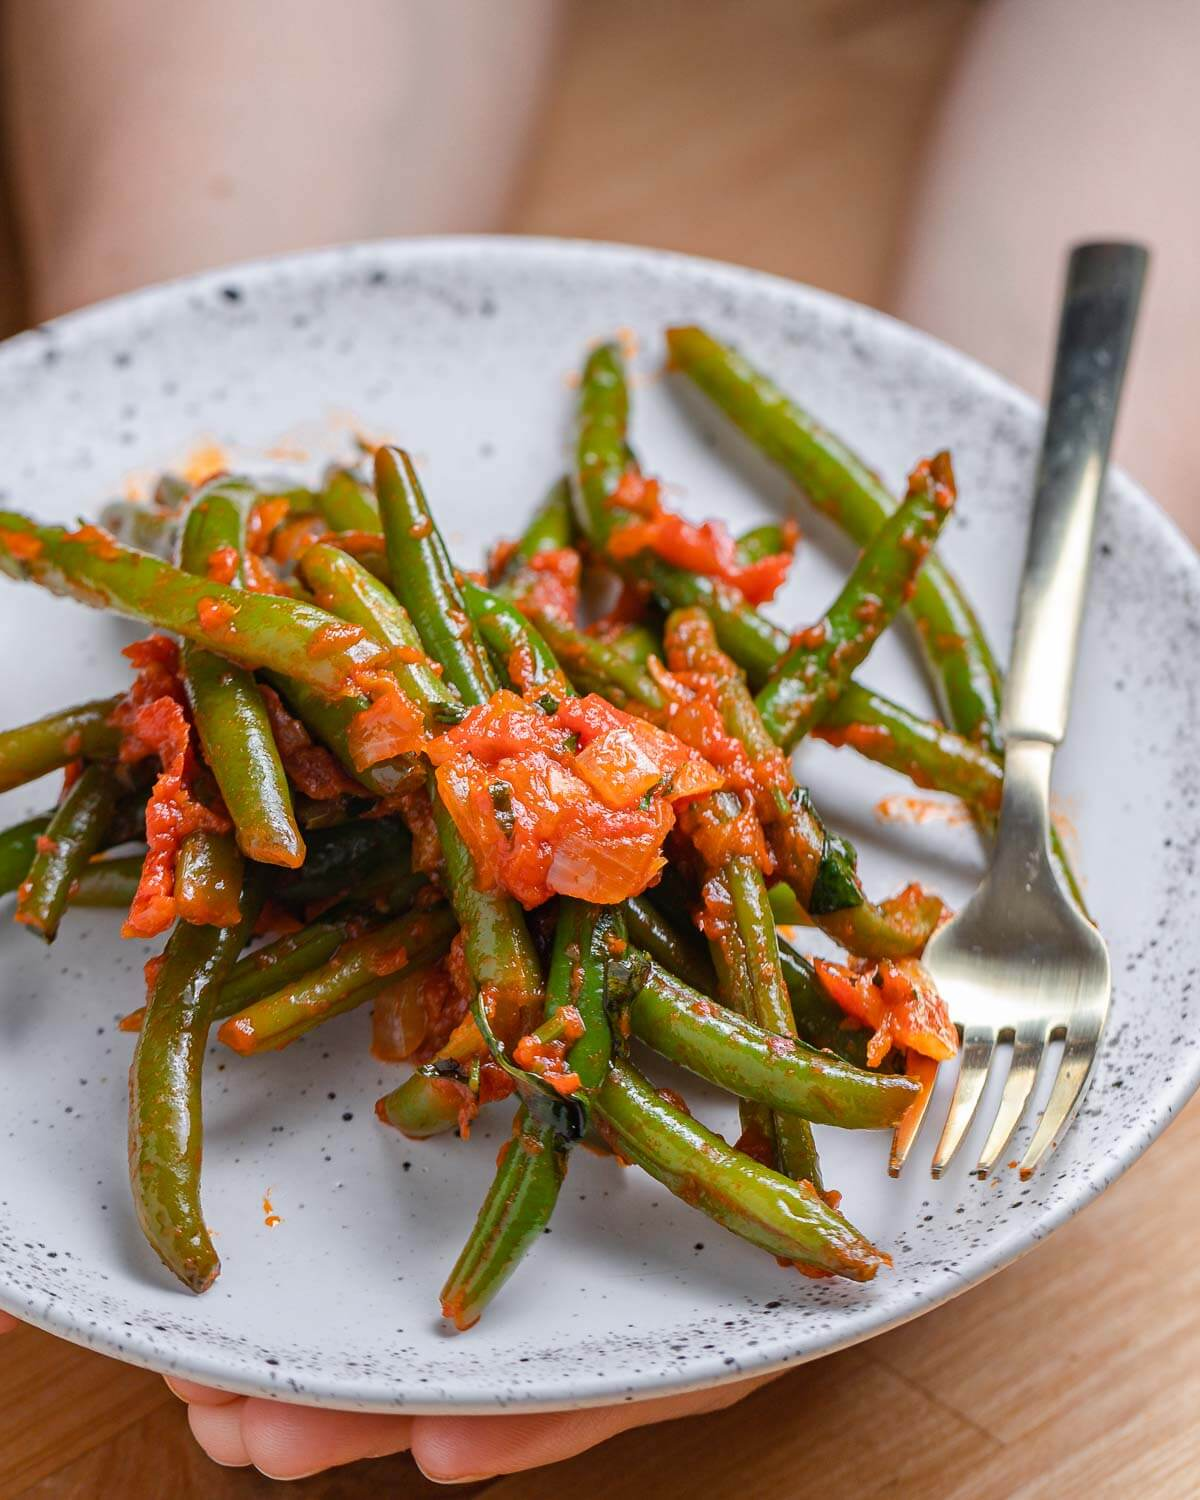 Green beans with tomato sauce on white plate held in hands.